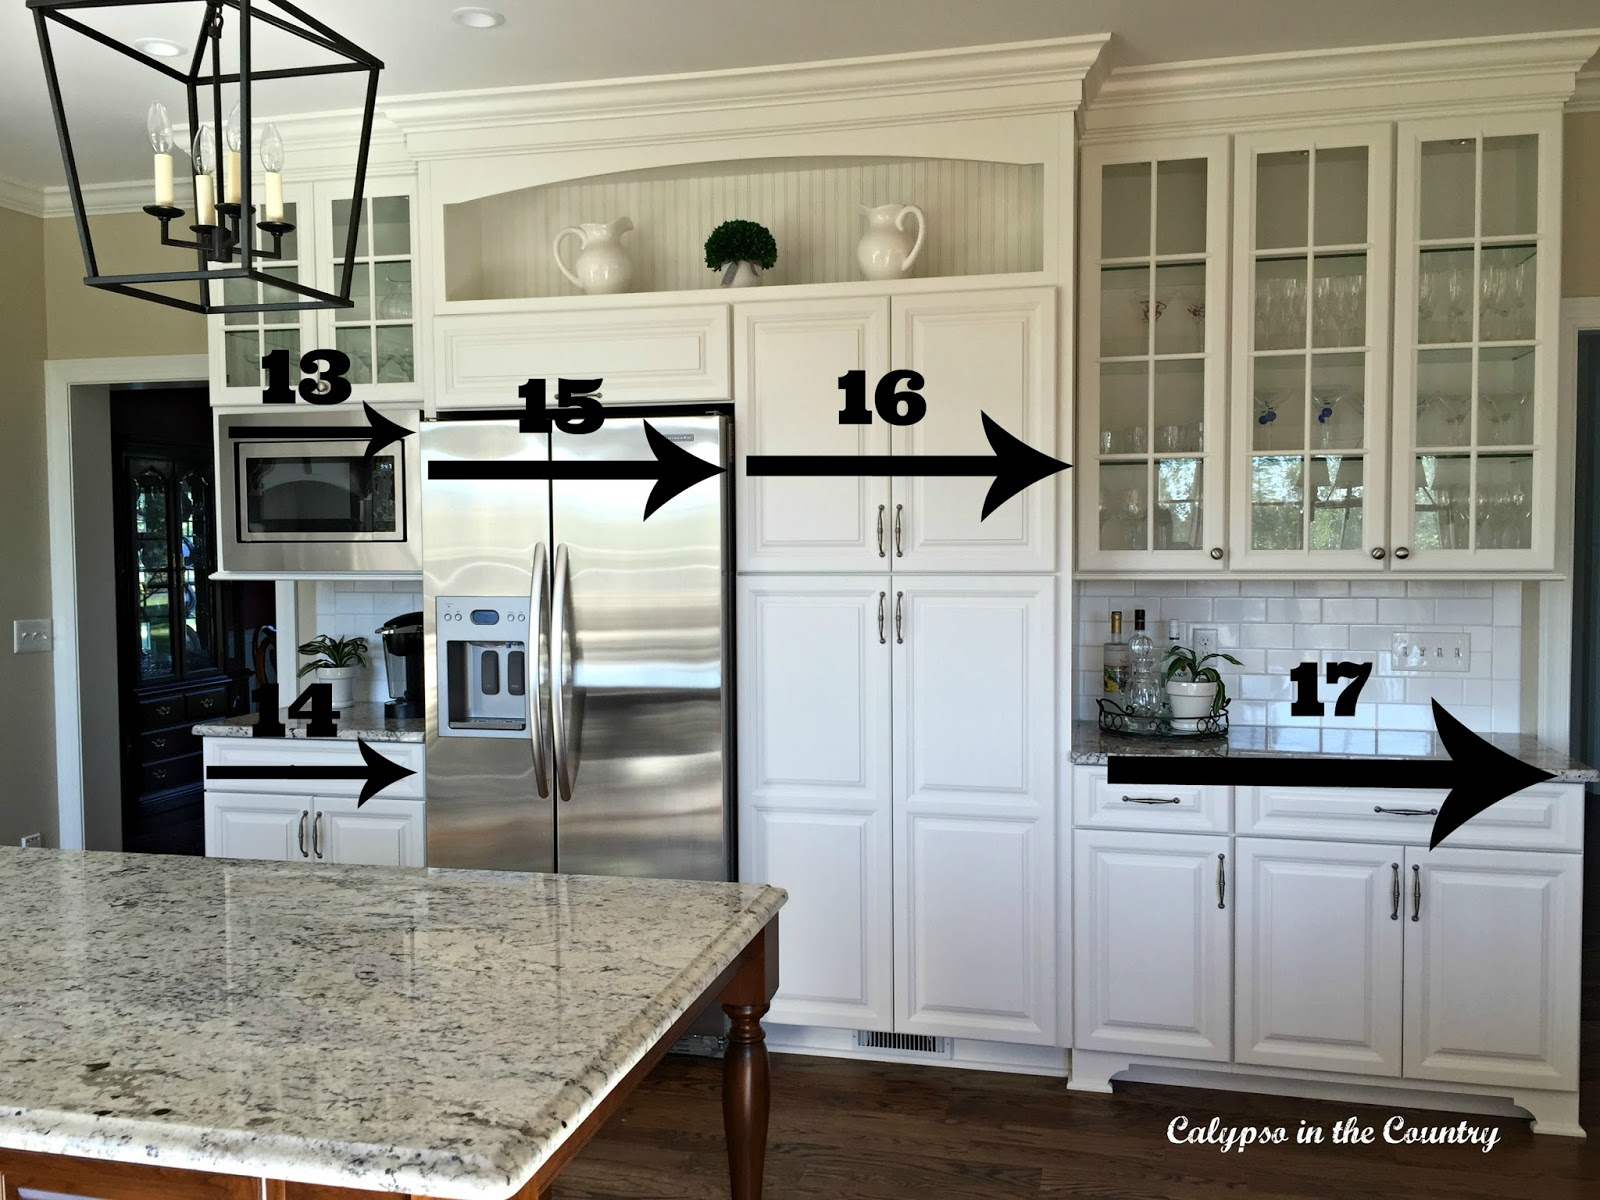 Refrigerator Wall Measurements and other important dimensions